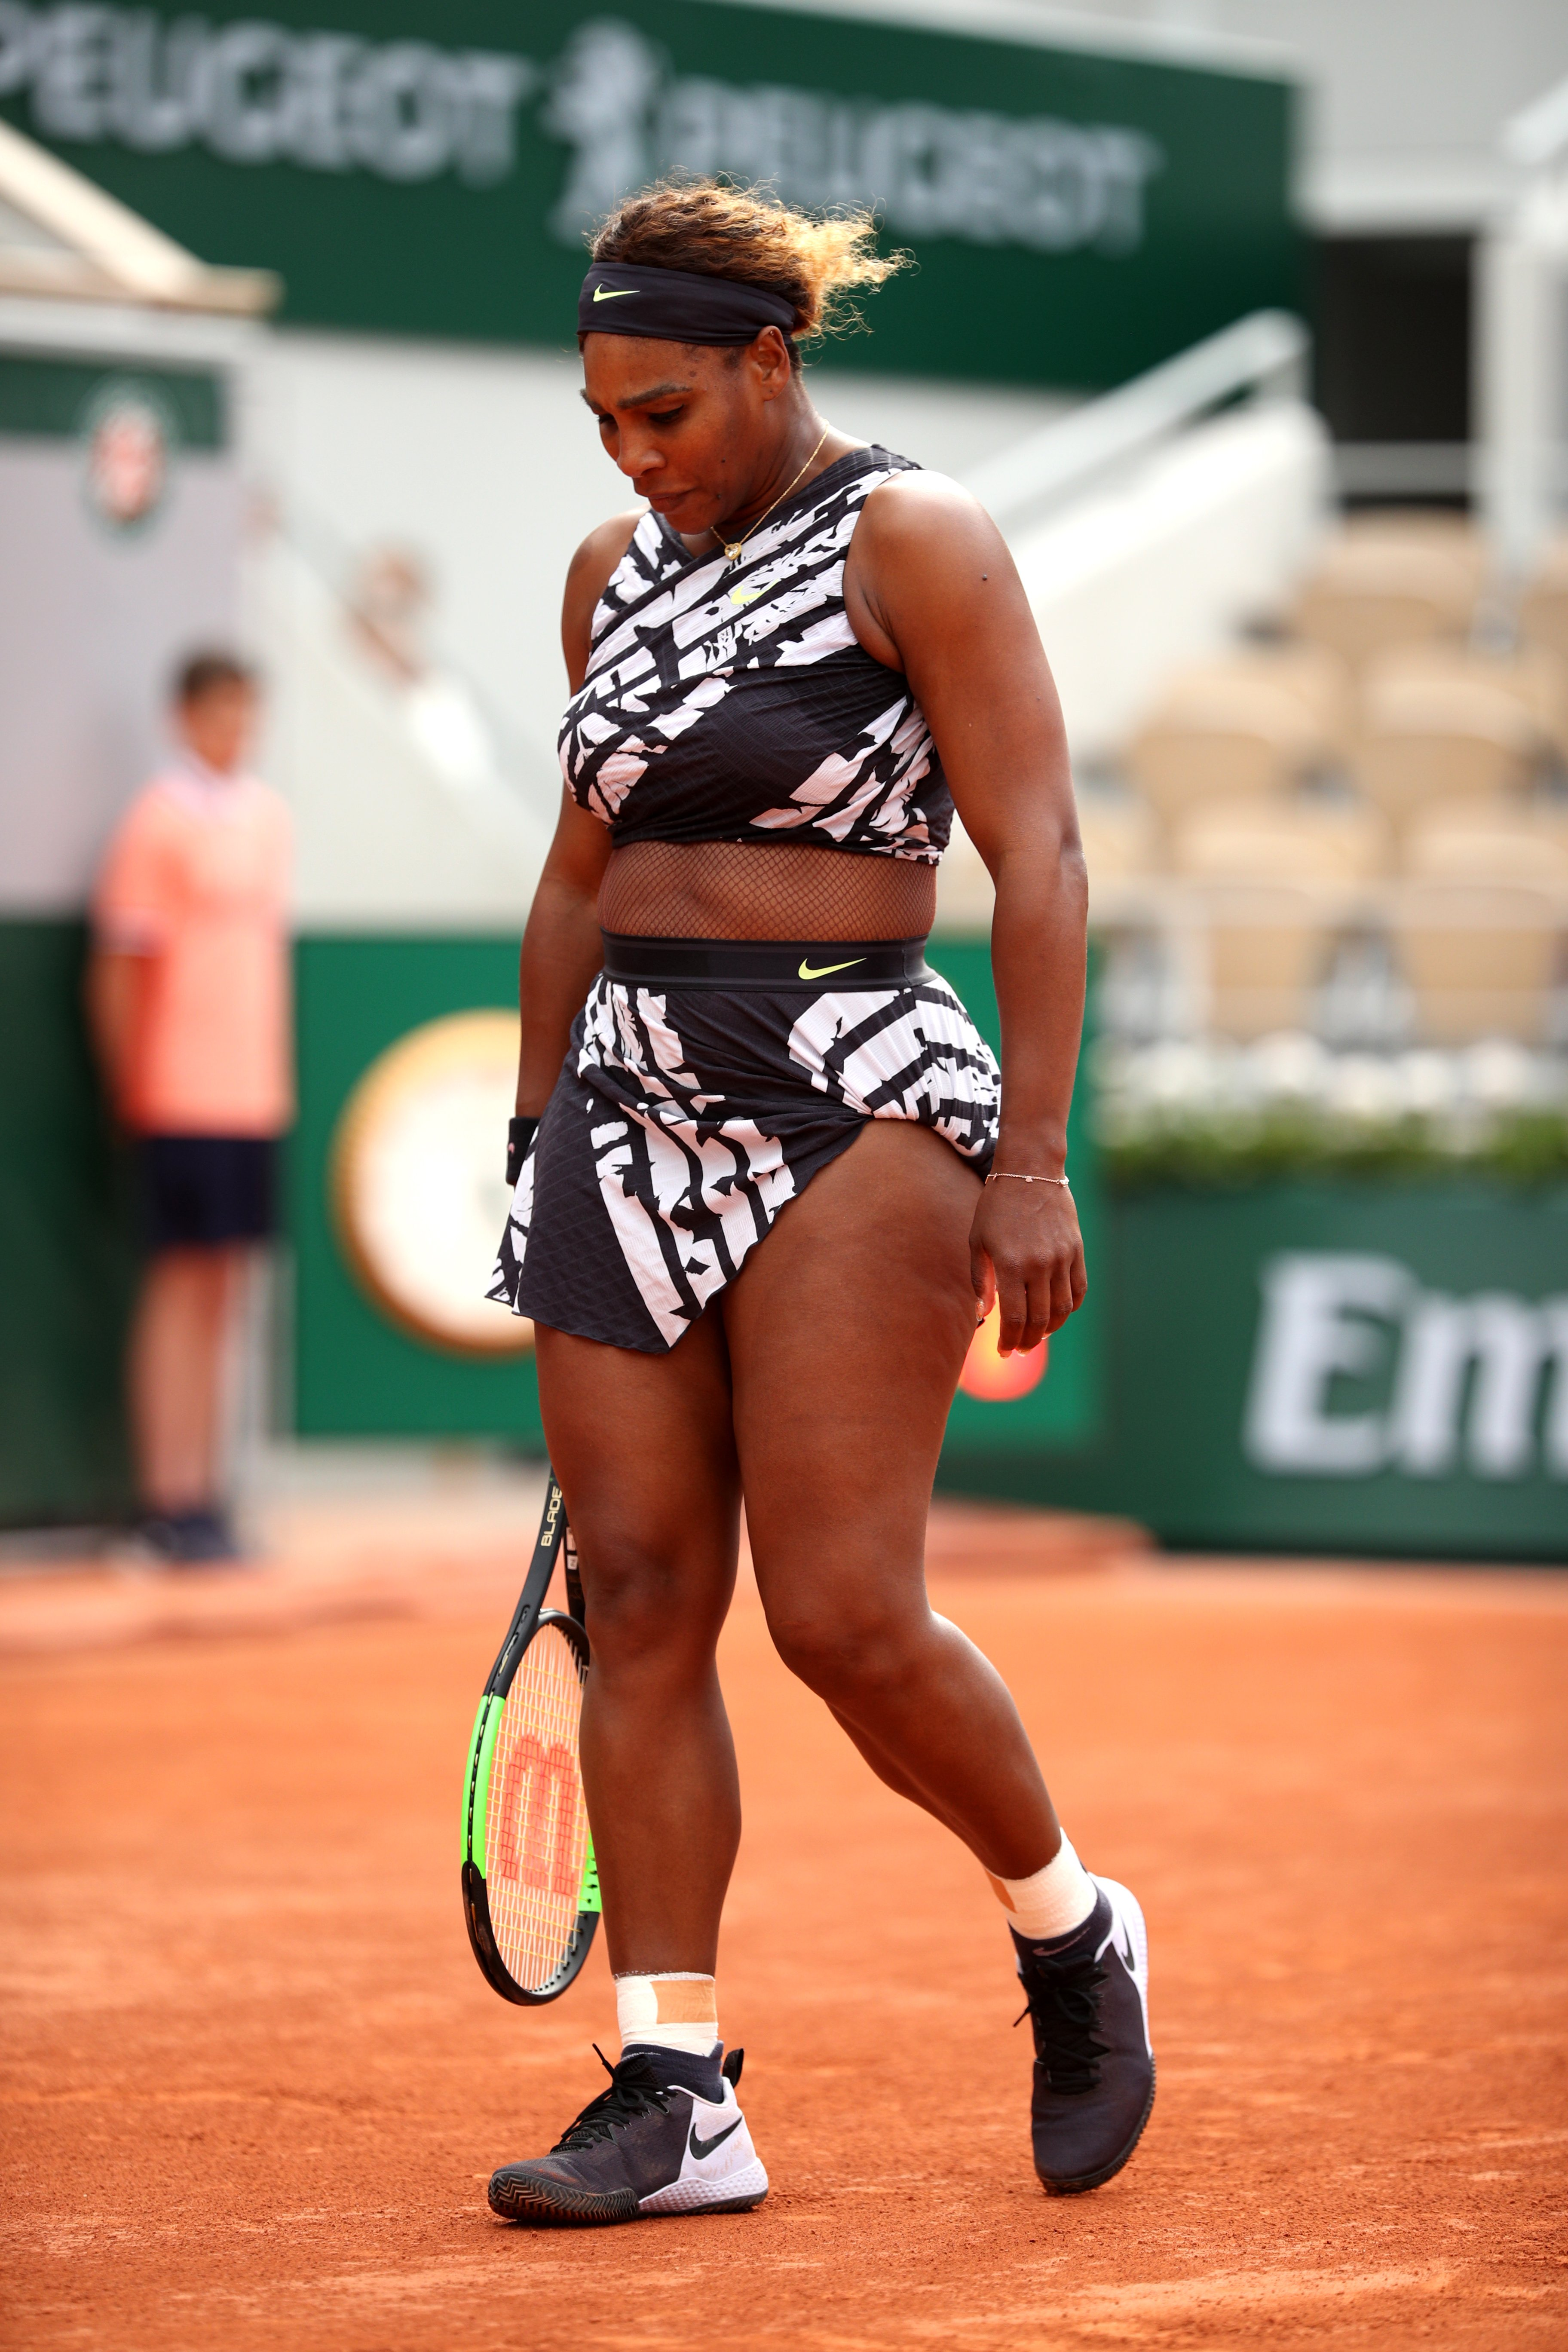 Serena Williams at the 2019 French Open at Roland Garros on May 27, 2019 in Paris, France | Photo: Getty Images